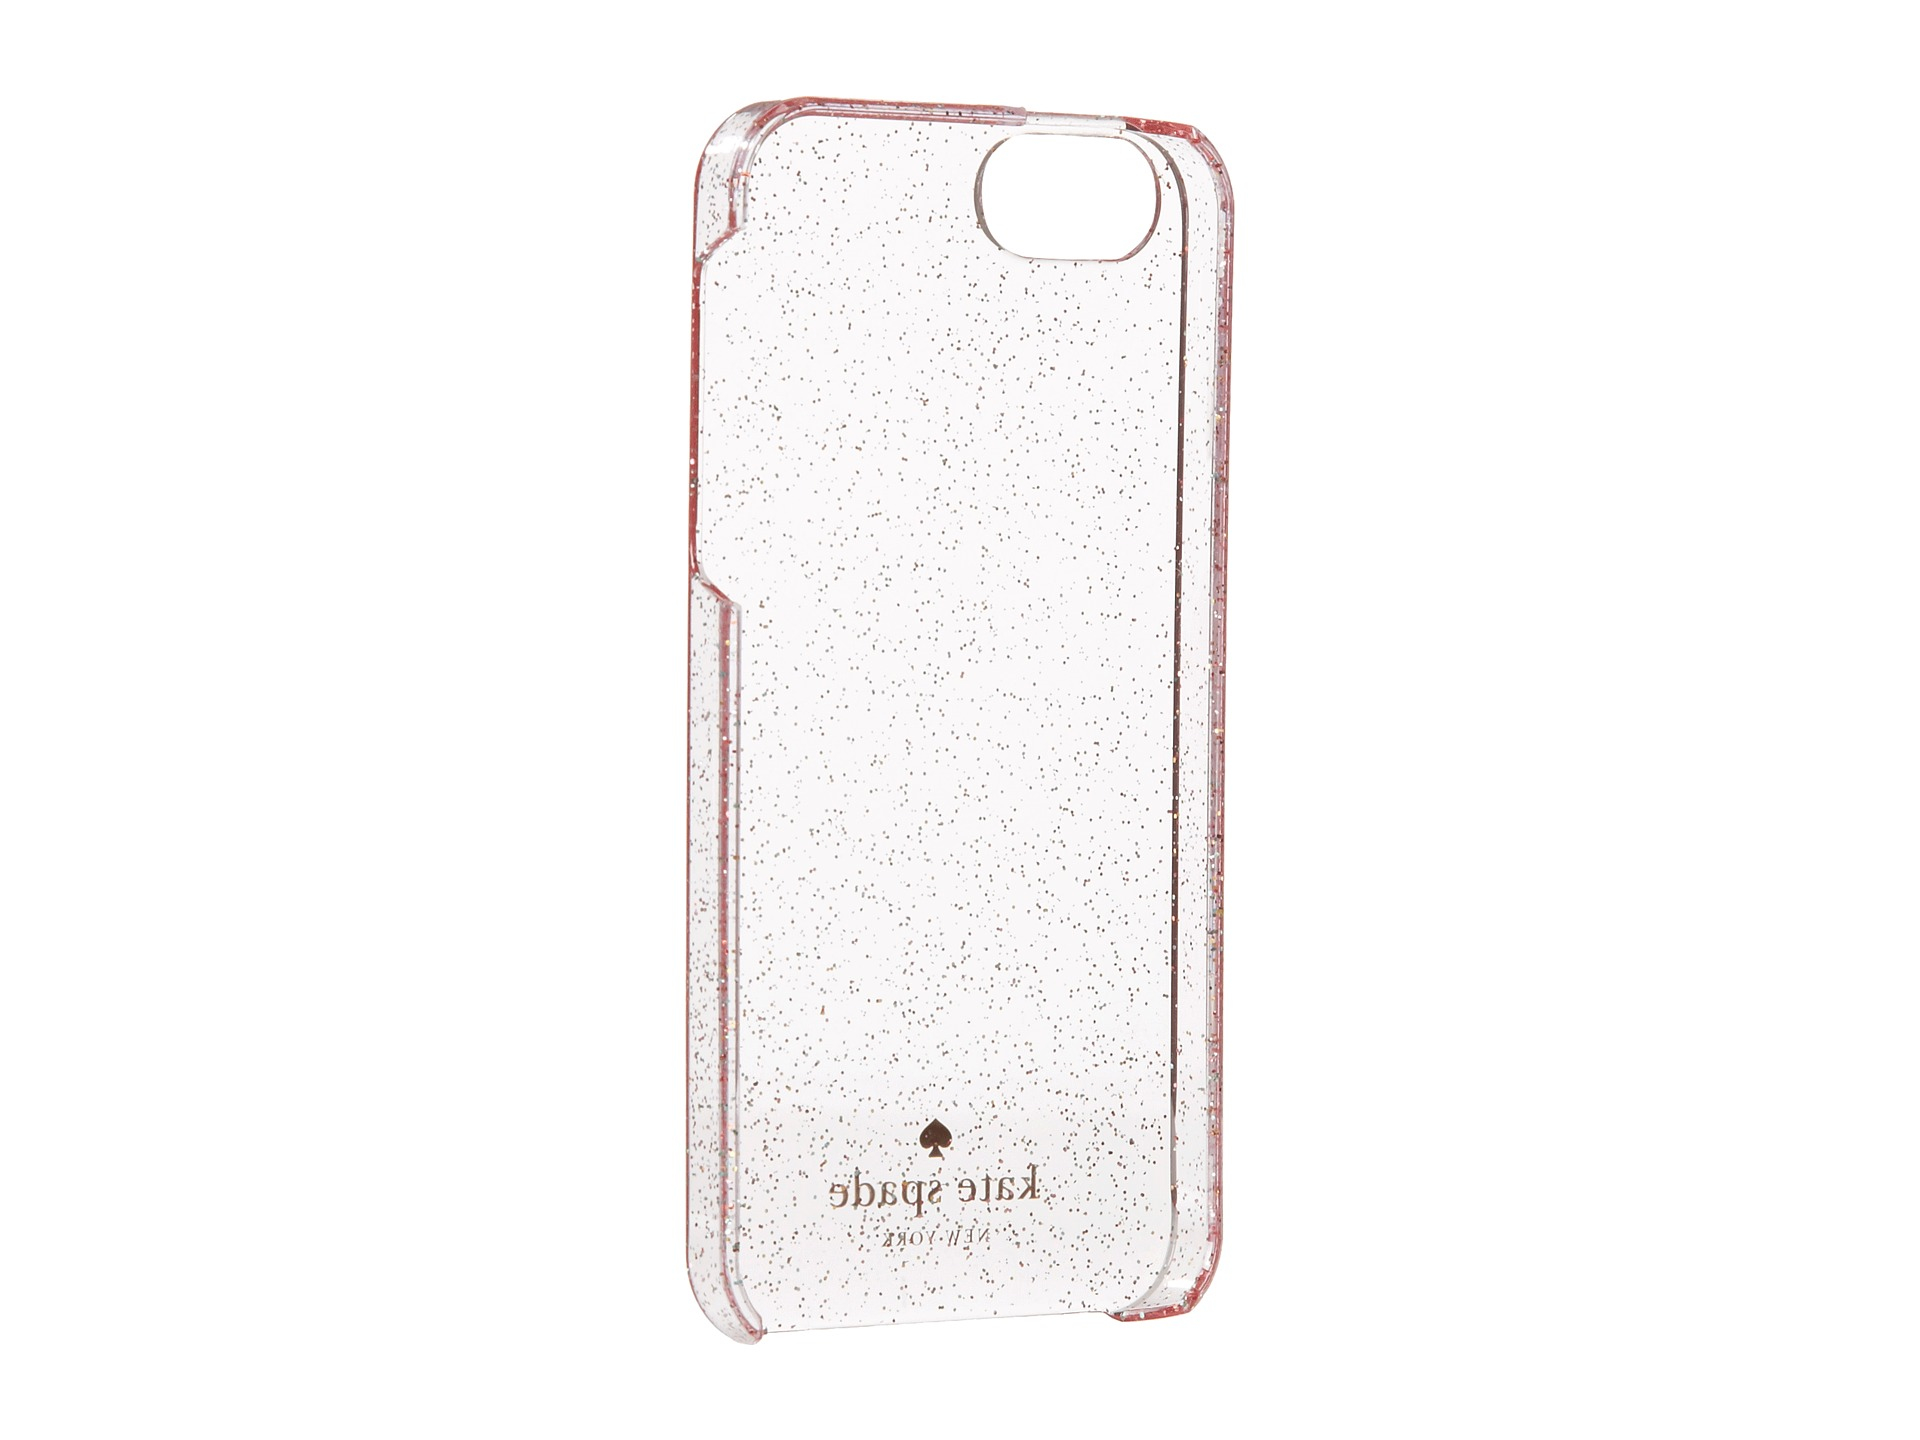 kate spade iphone 5 case lyst kate spade new york glitter clear resin iphone 174 5 10284